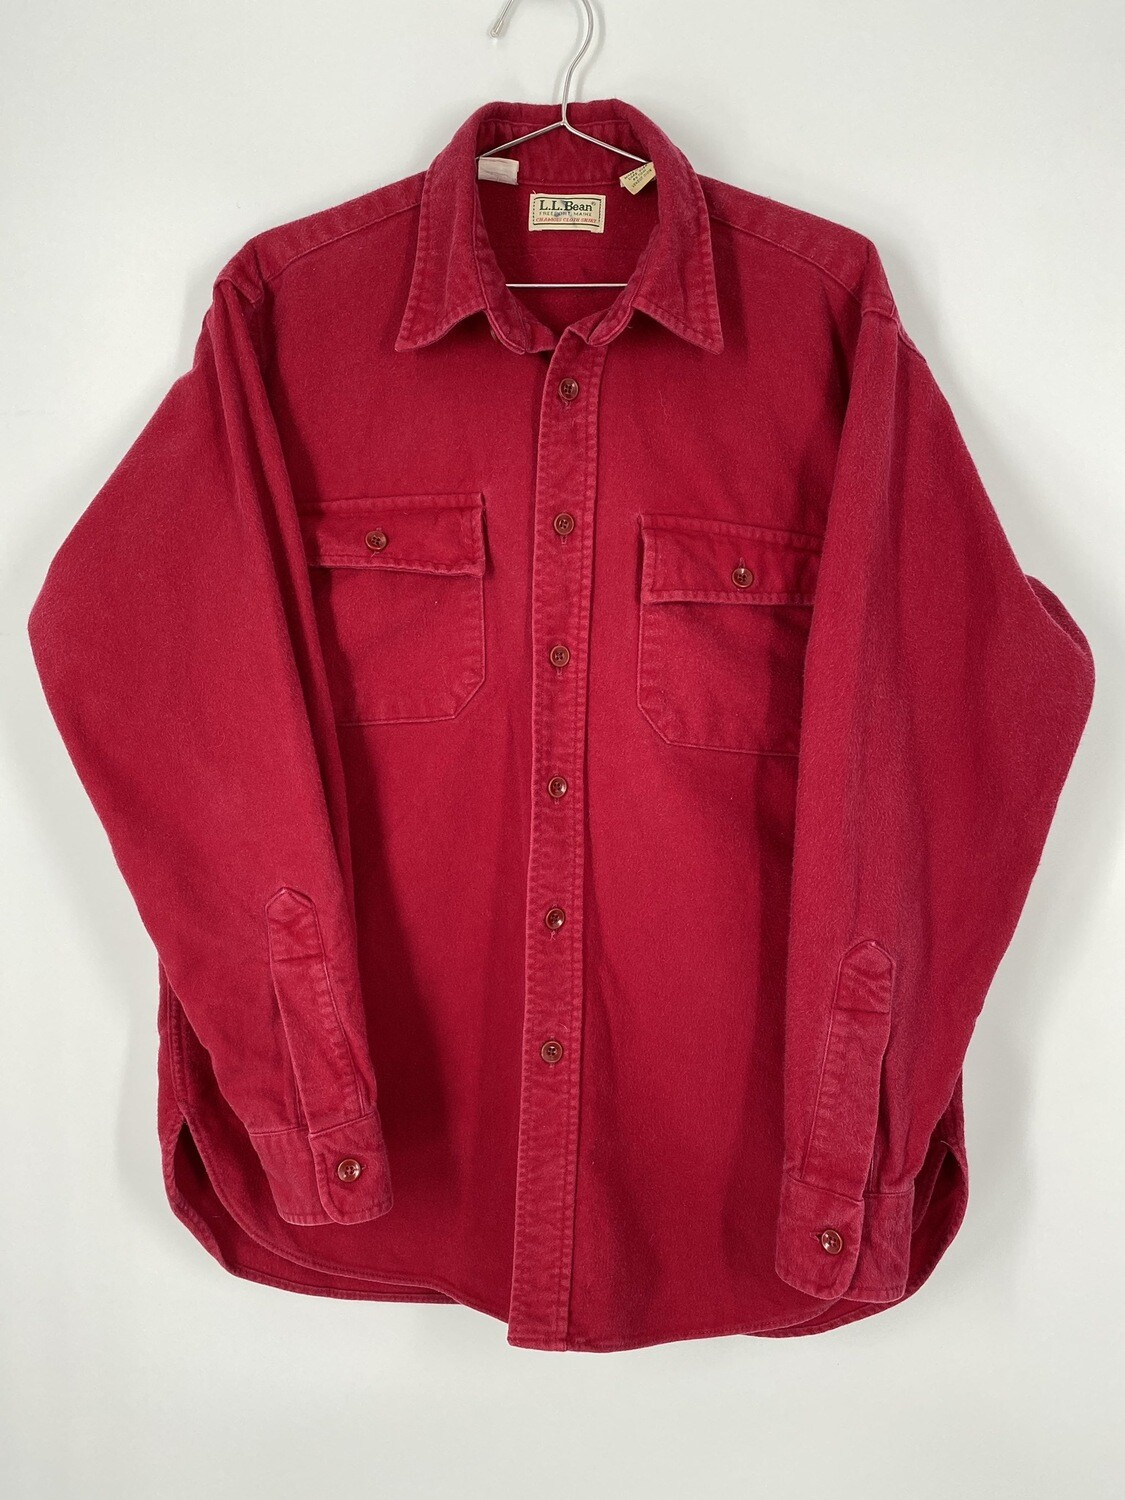 L.L. Bean Red Flannel Button Up Size M